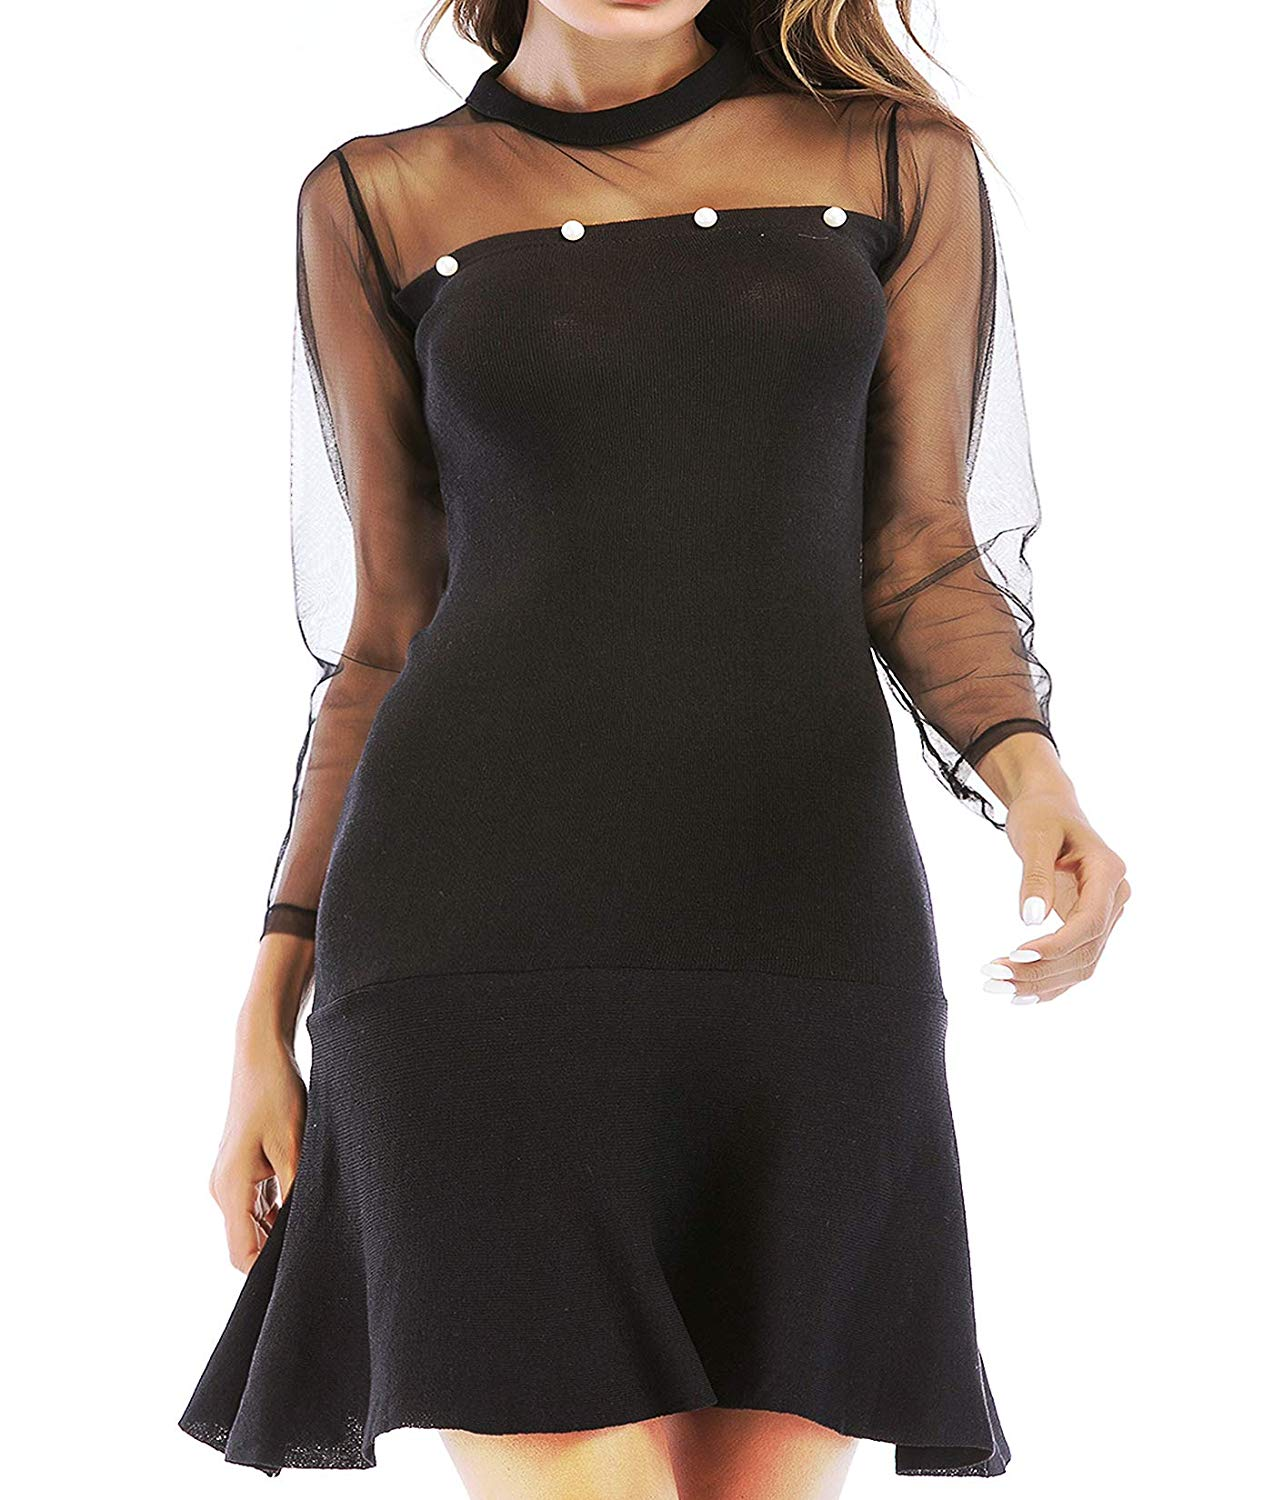 Women Mesh Long Sleeve Dress Tunic Fitted Casual Black Cocktail Swing Mini Jersey Junior Knit Dresses Sexy Night Party